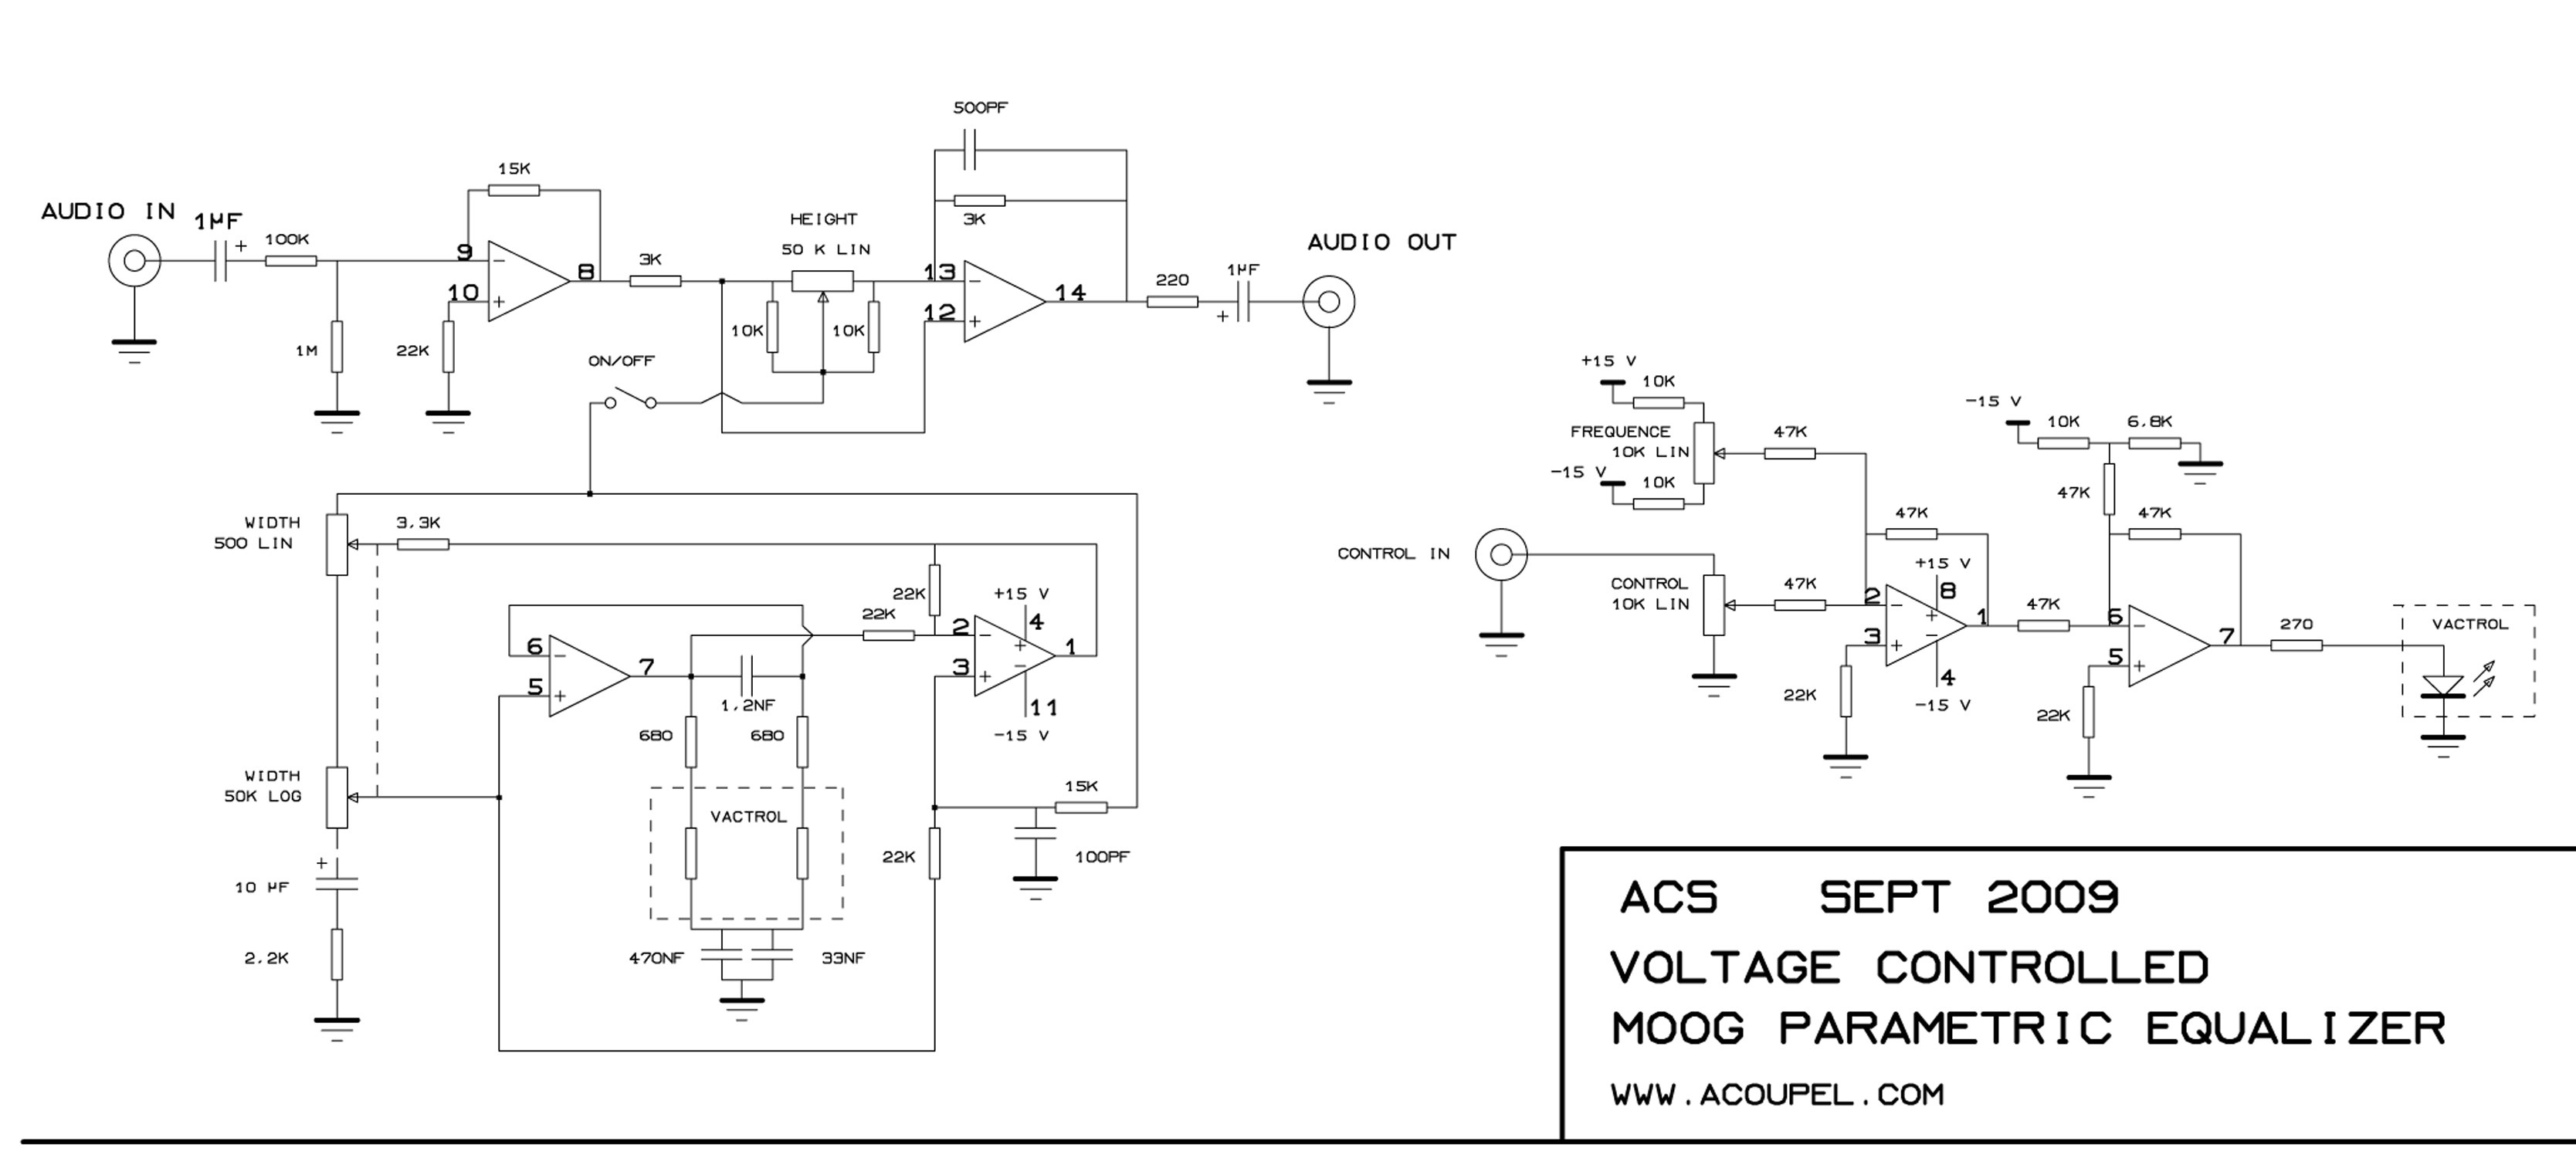 Wiki Schematics Moog Parametric Equalizer Graphic Circuit Diagram